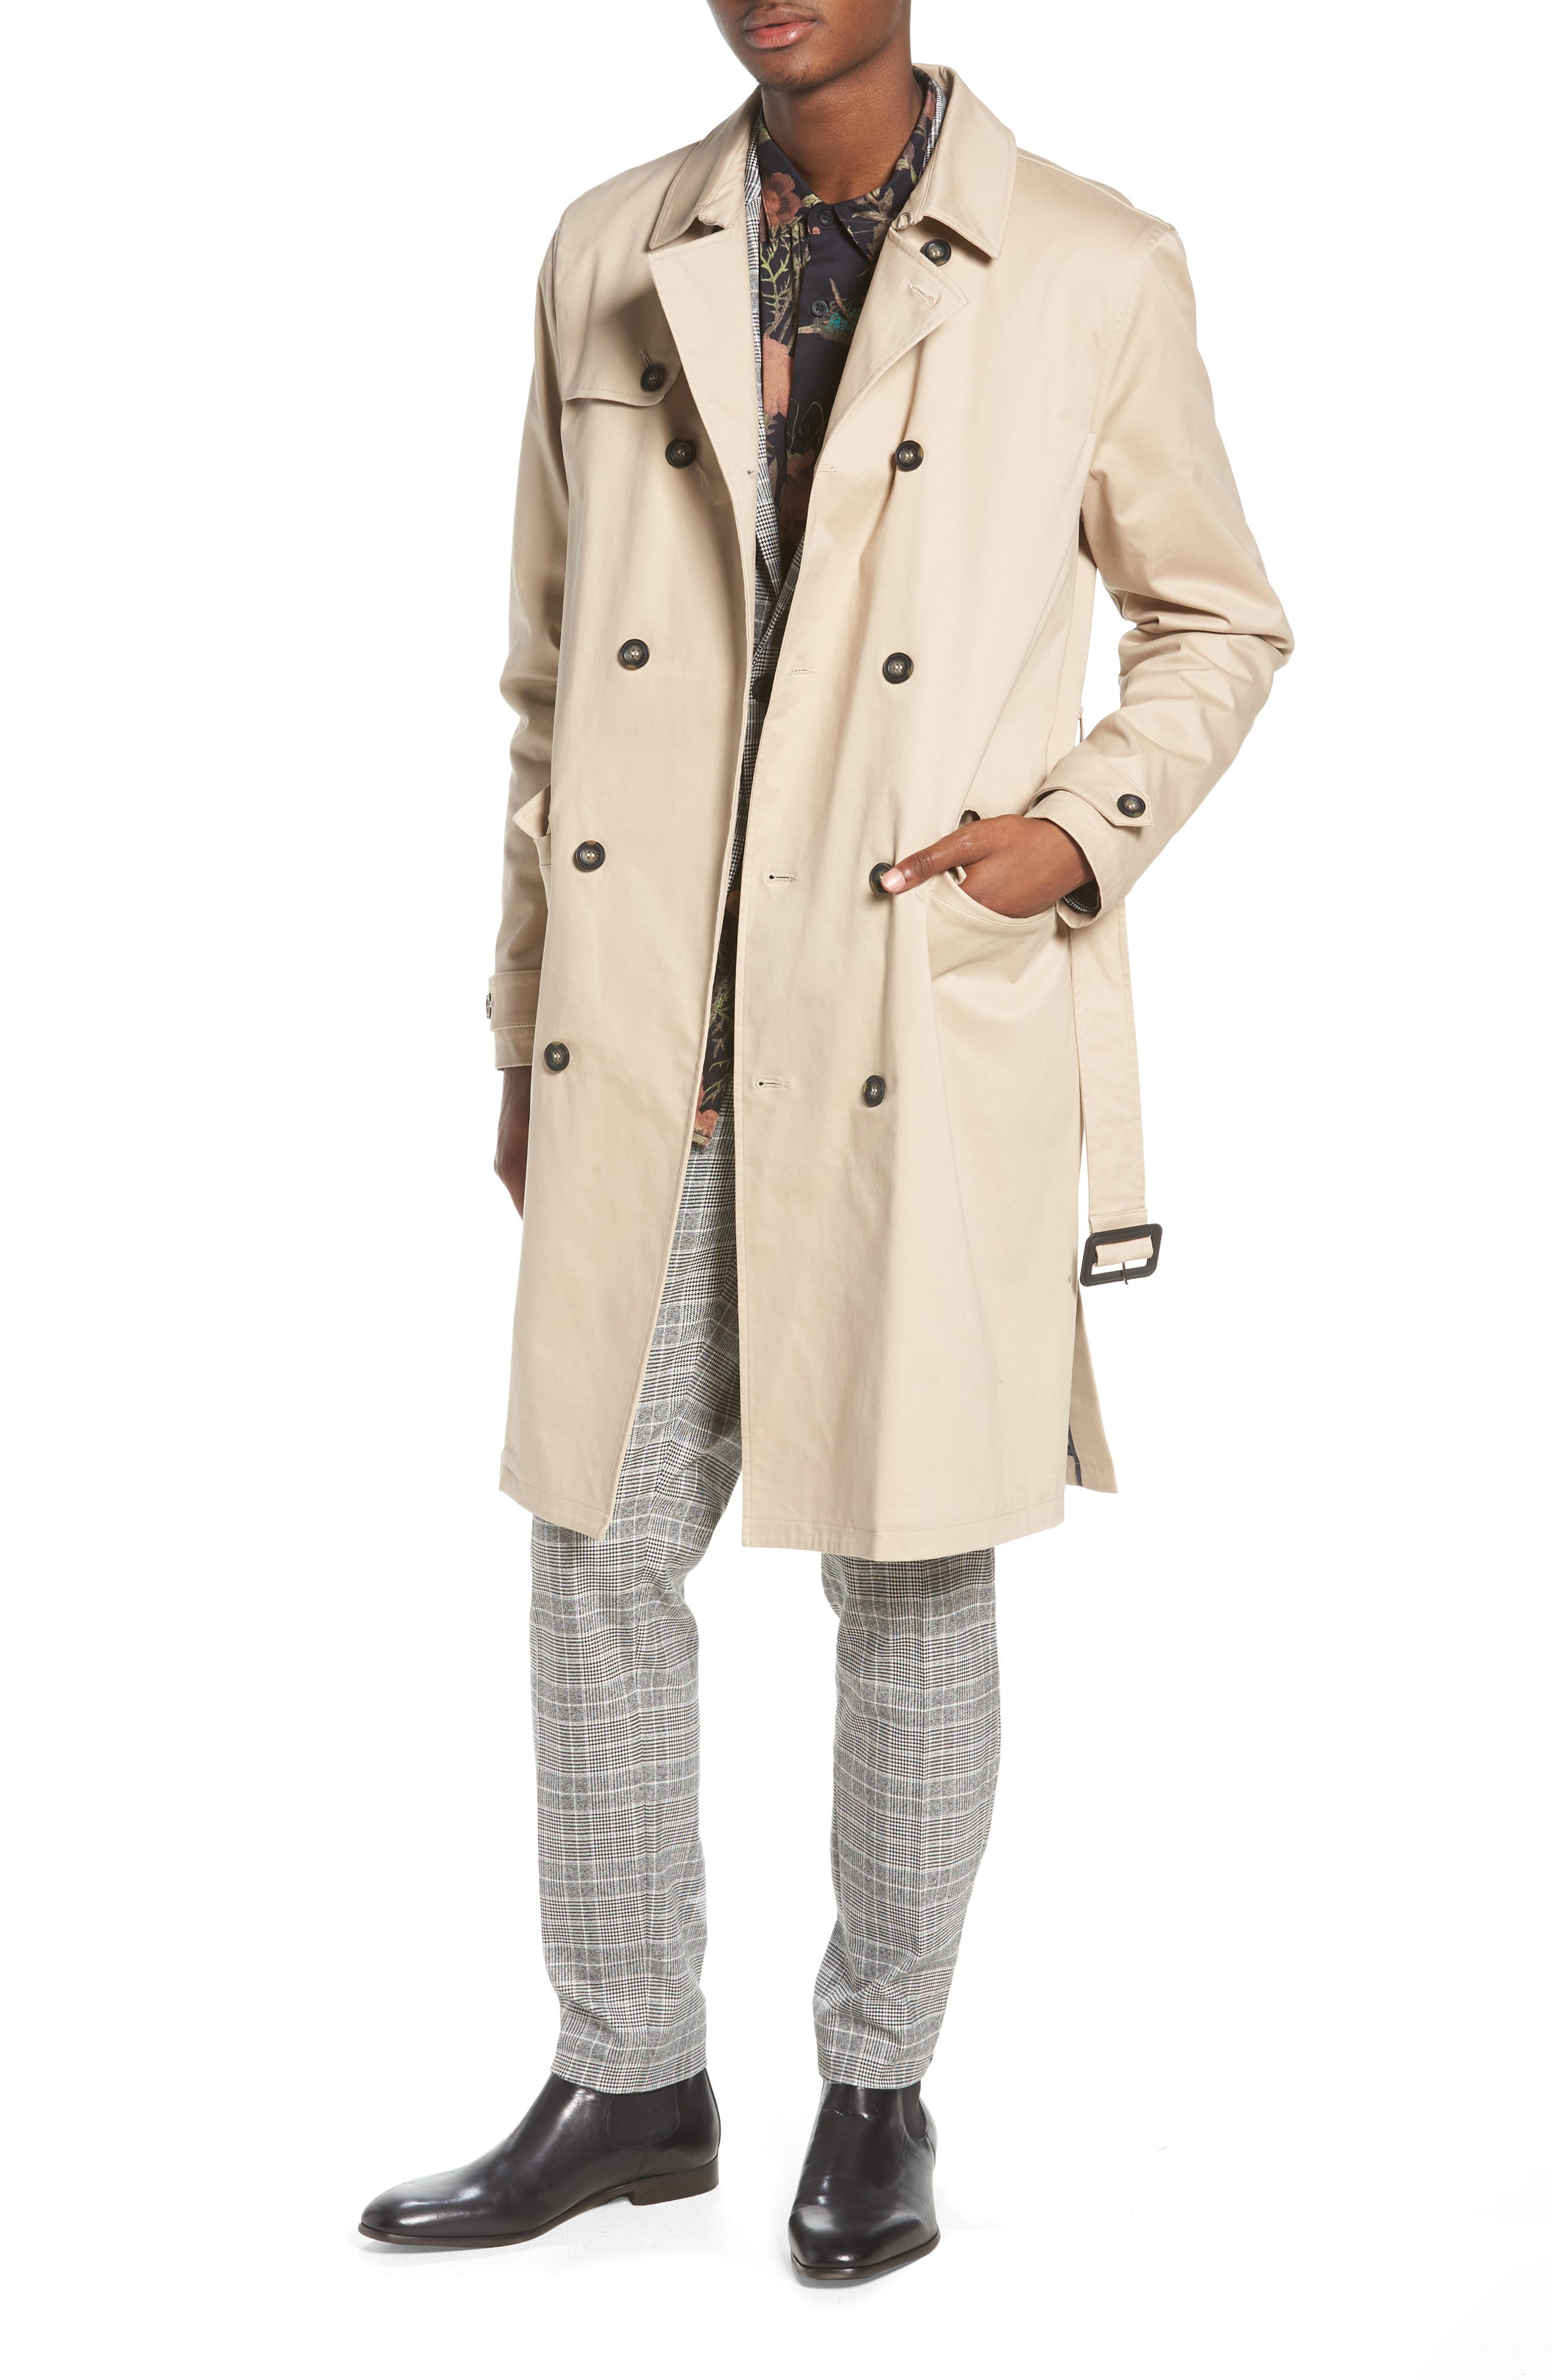 1960s Men's Clothing, 70s Men's Fashion Mens Topman Peached Trench Coat Size X-Small - Beige $64.99 AT vintagedancer.com